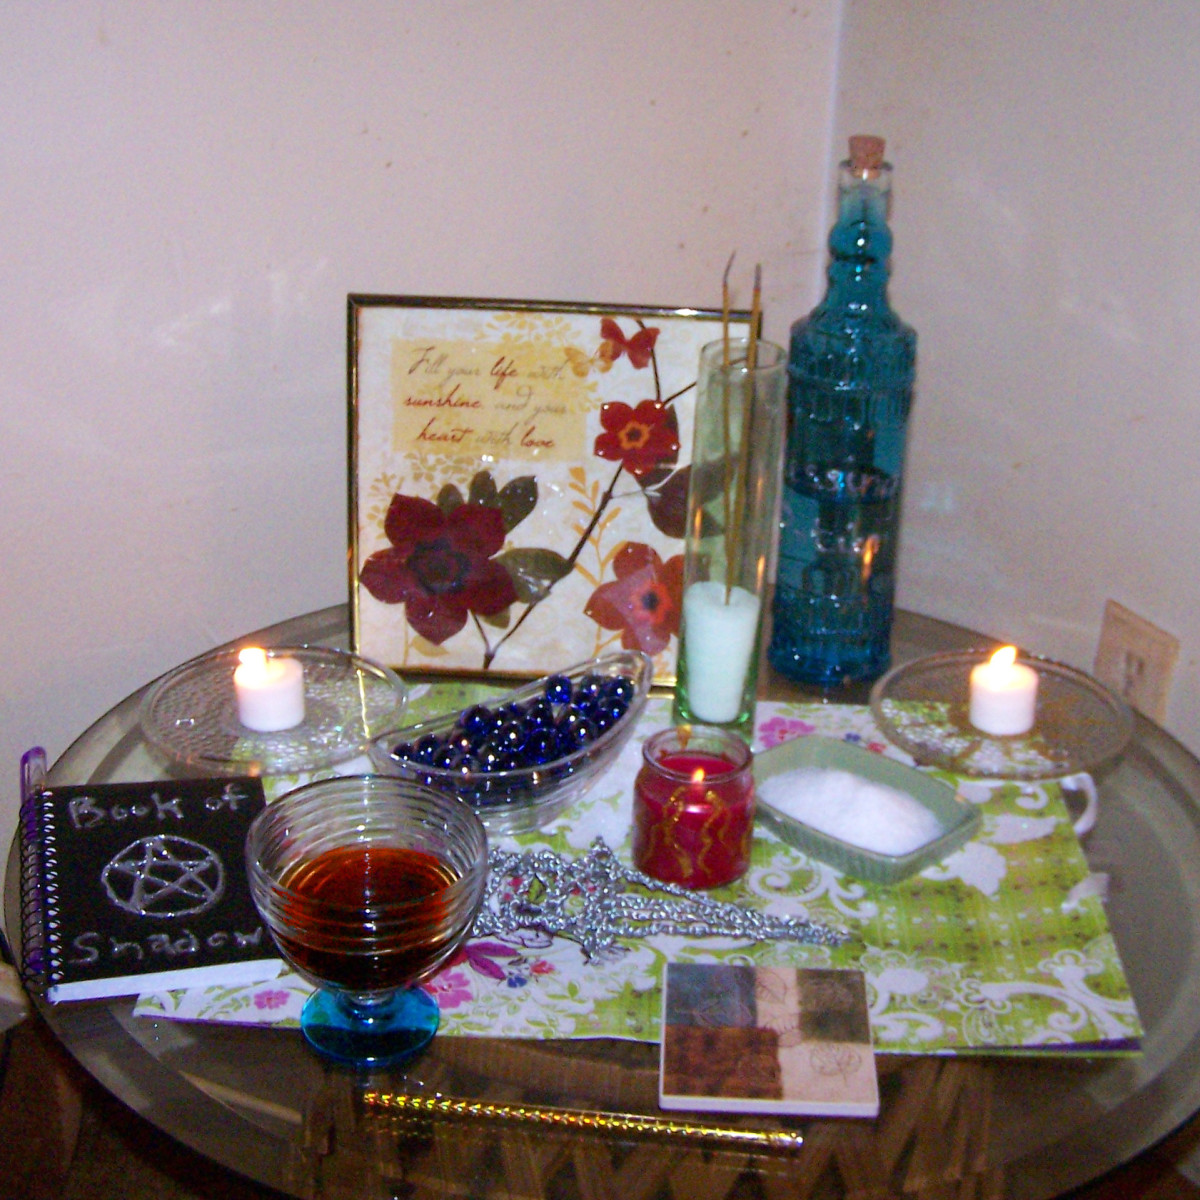 How to Make a Wicca Altar on a Dollar Store Budget